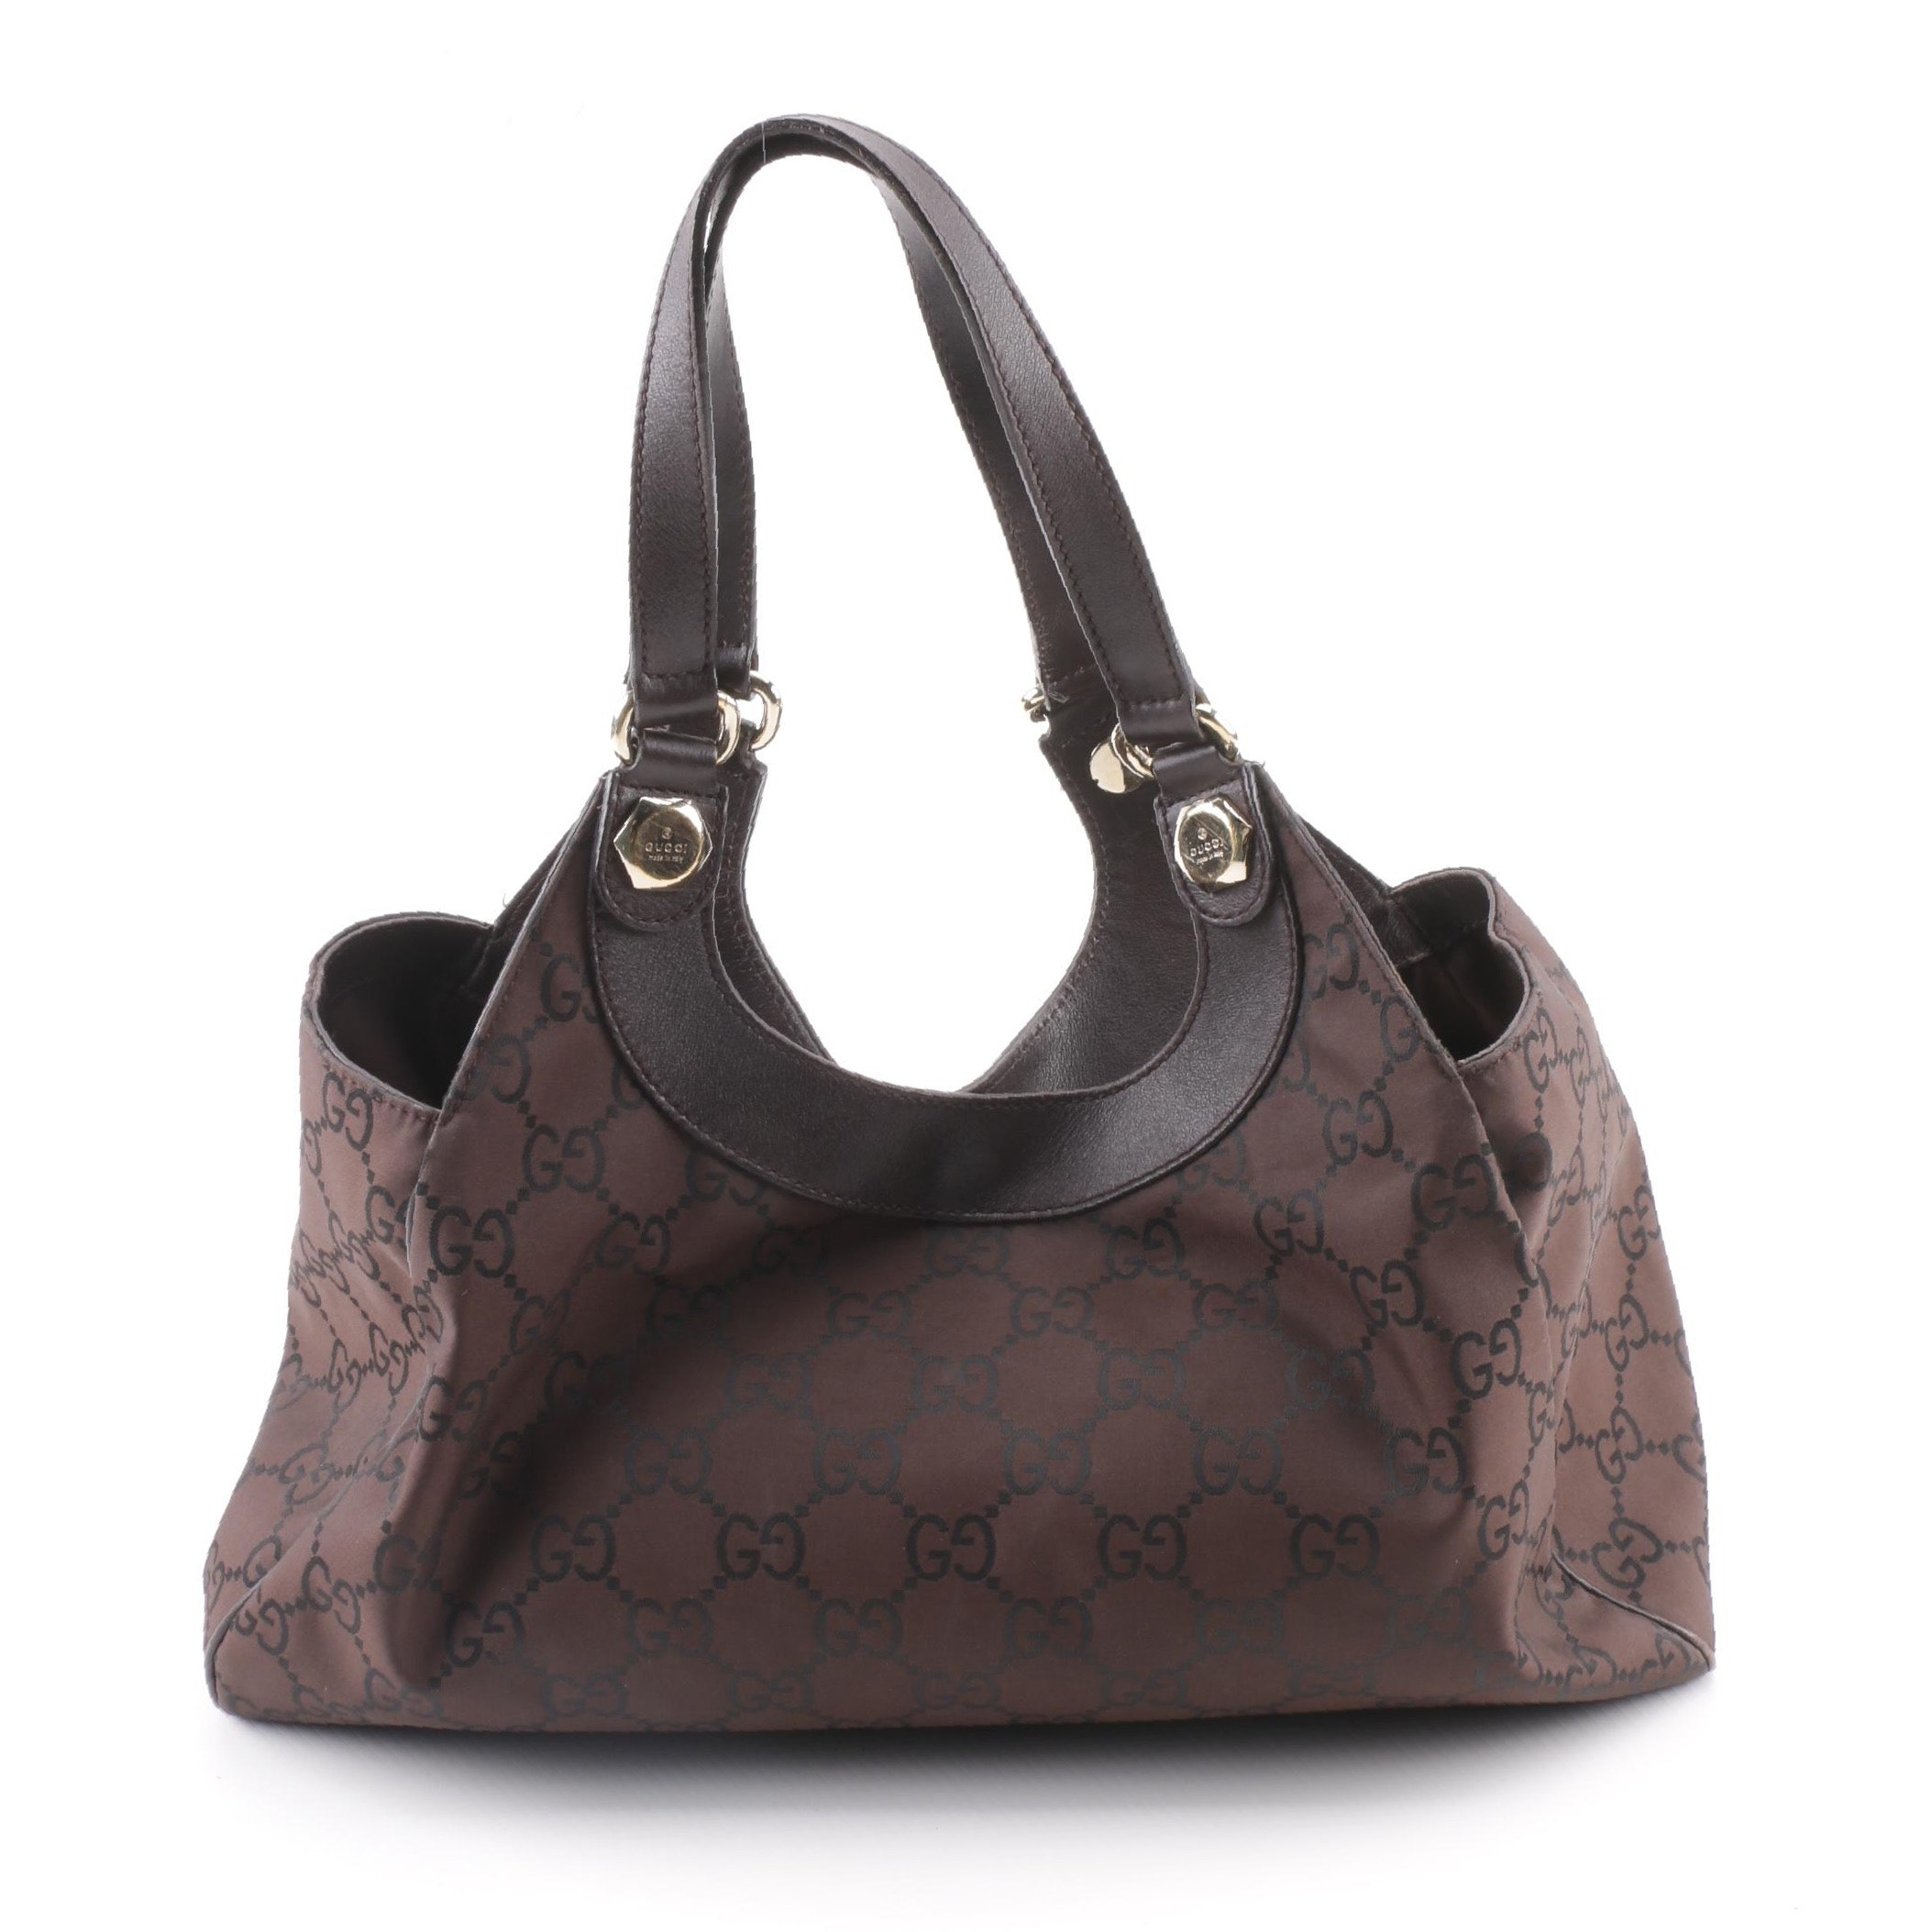 Gucci GG Dark Brown Nylon Canvas and Leather Shoulder Bag